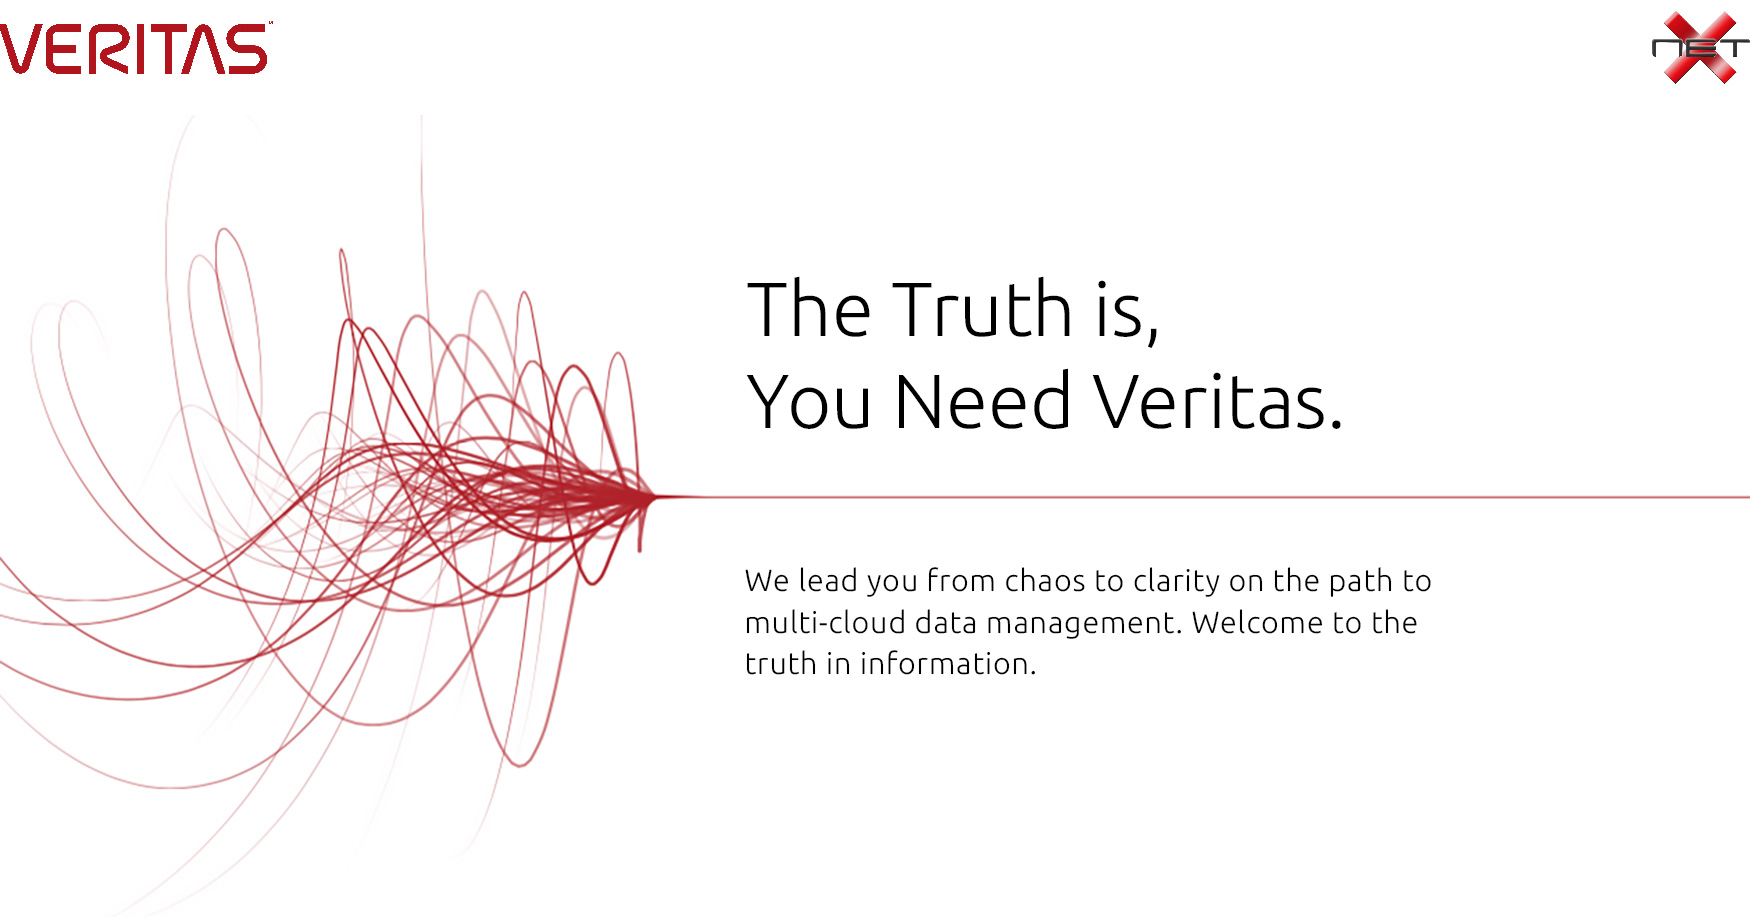 veritas products with Netx